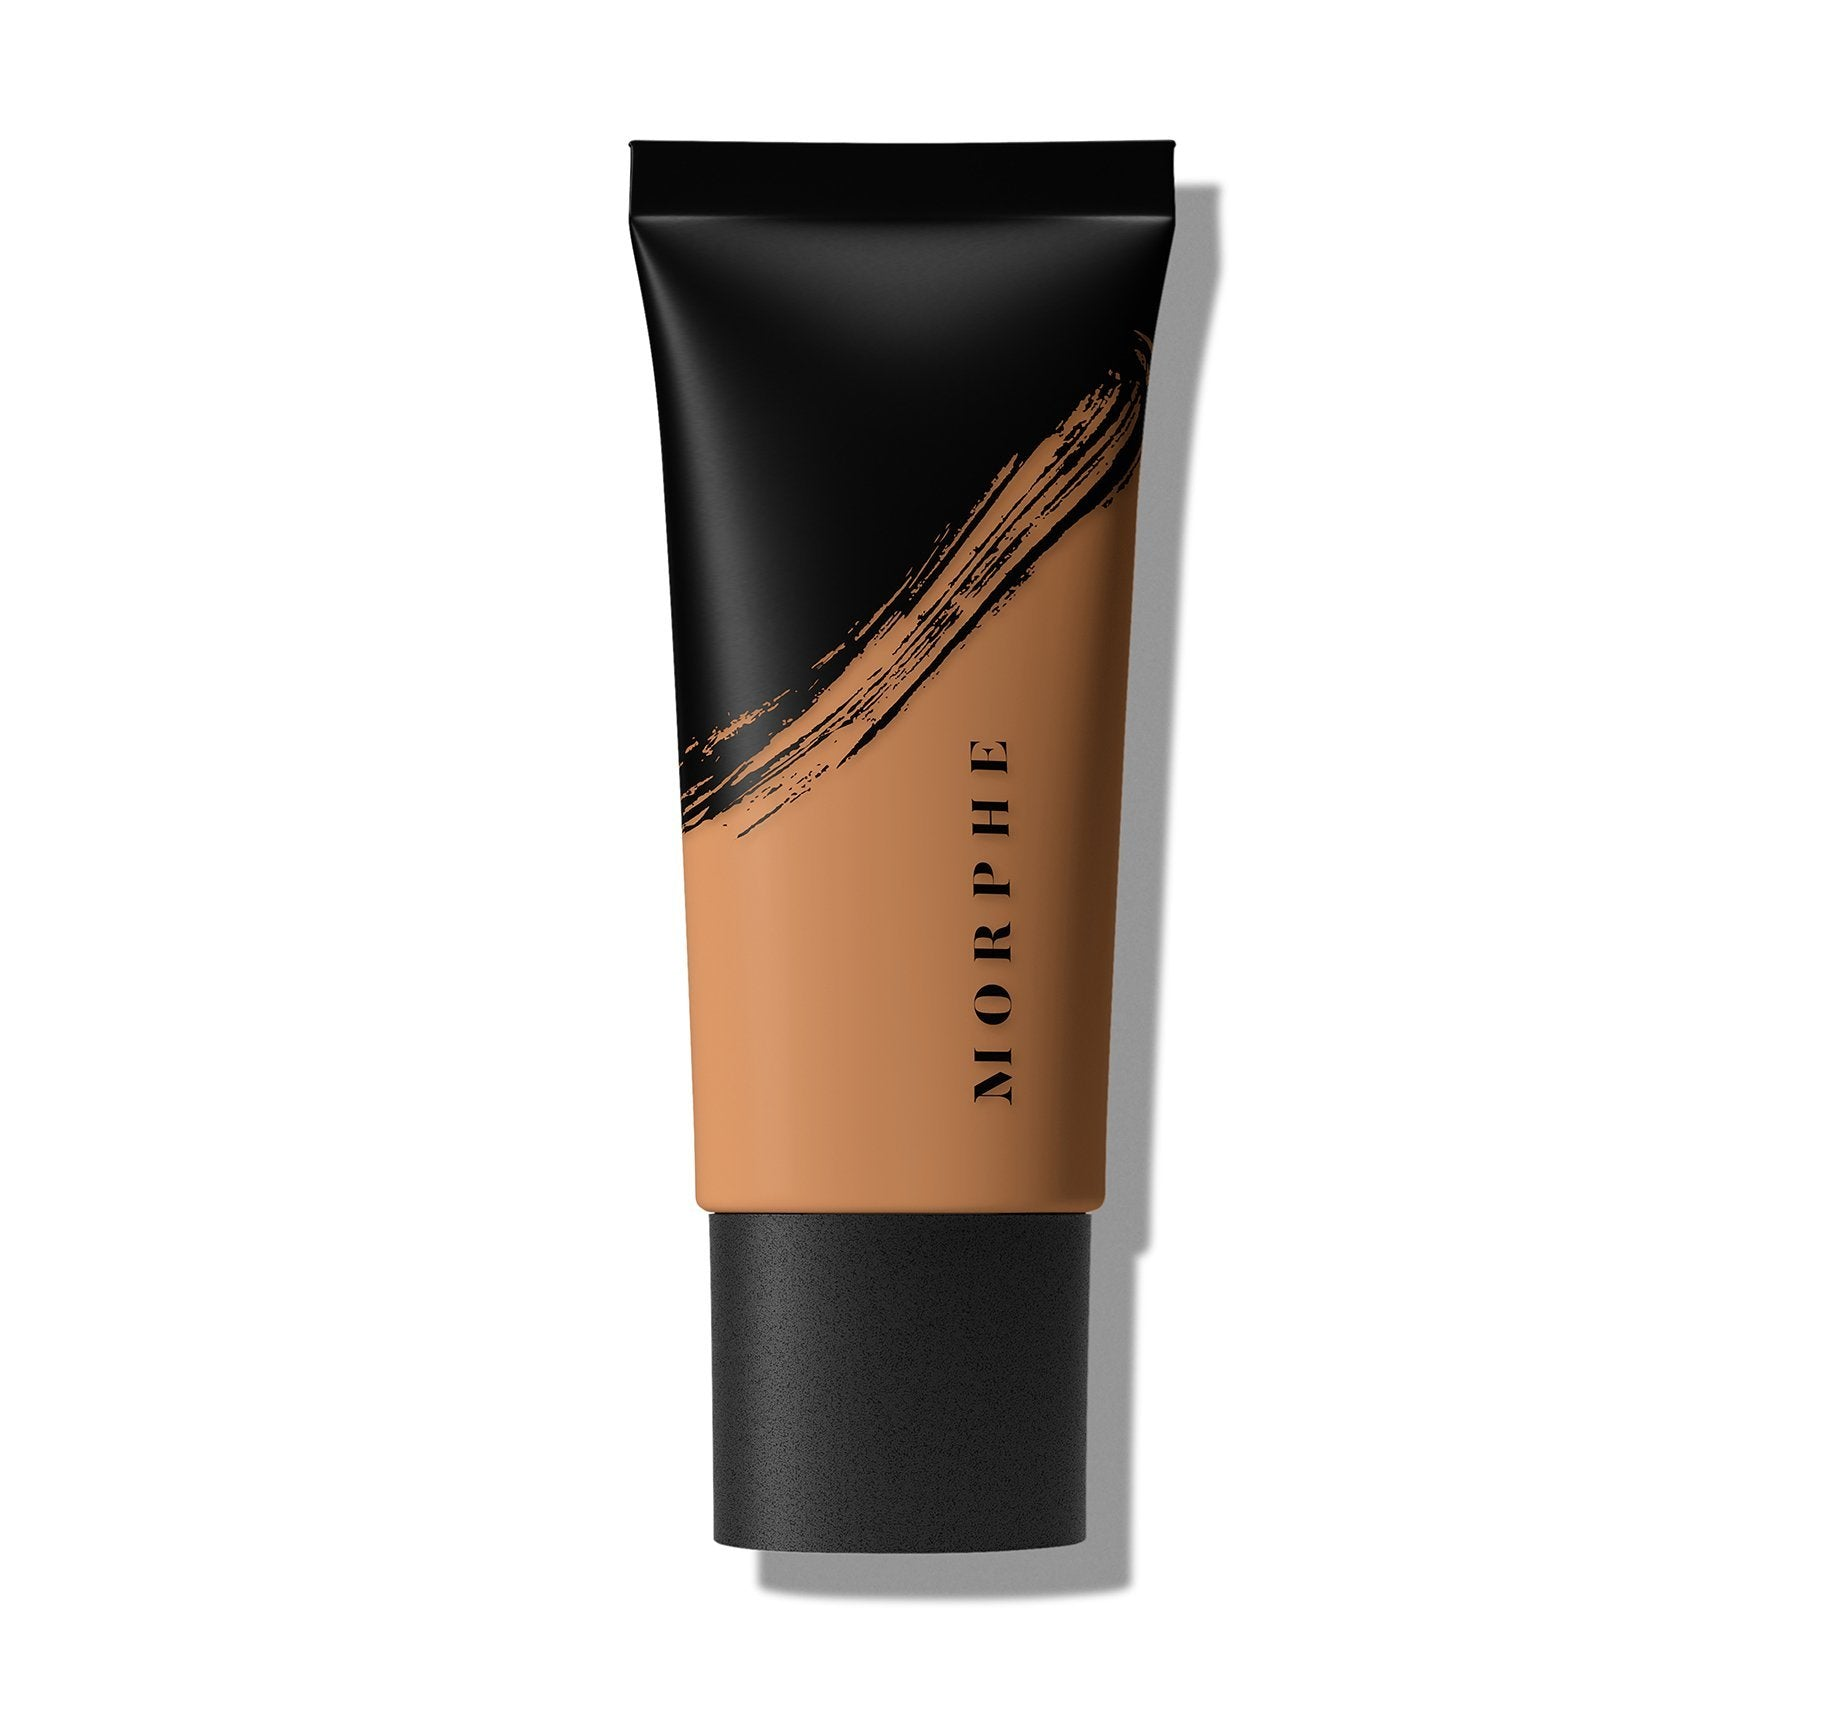 FLUIDITY FULL-COVERAGE FOUNDATION - F2.109, view larger image